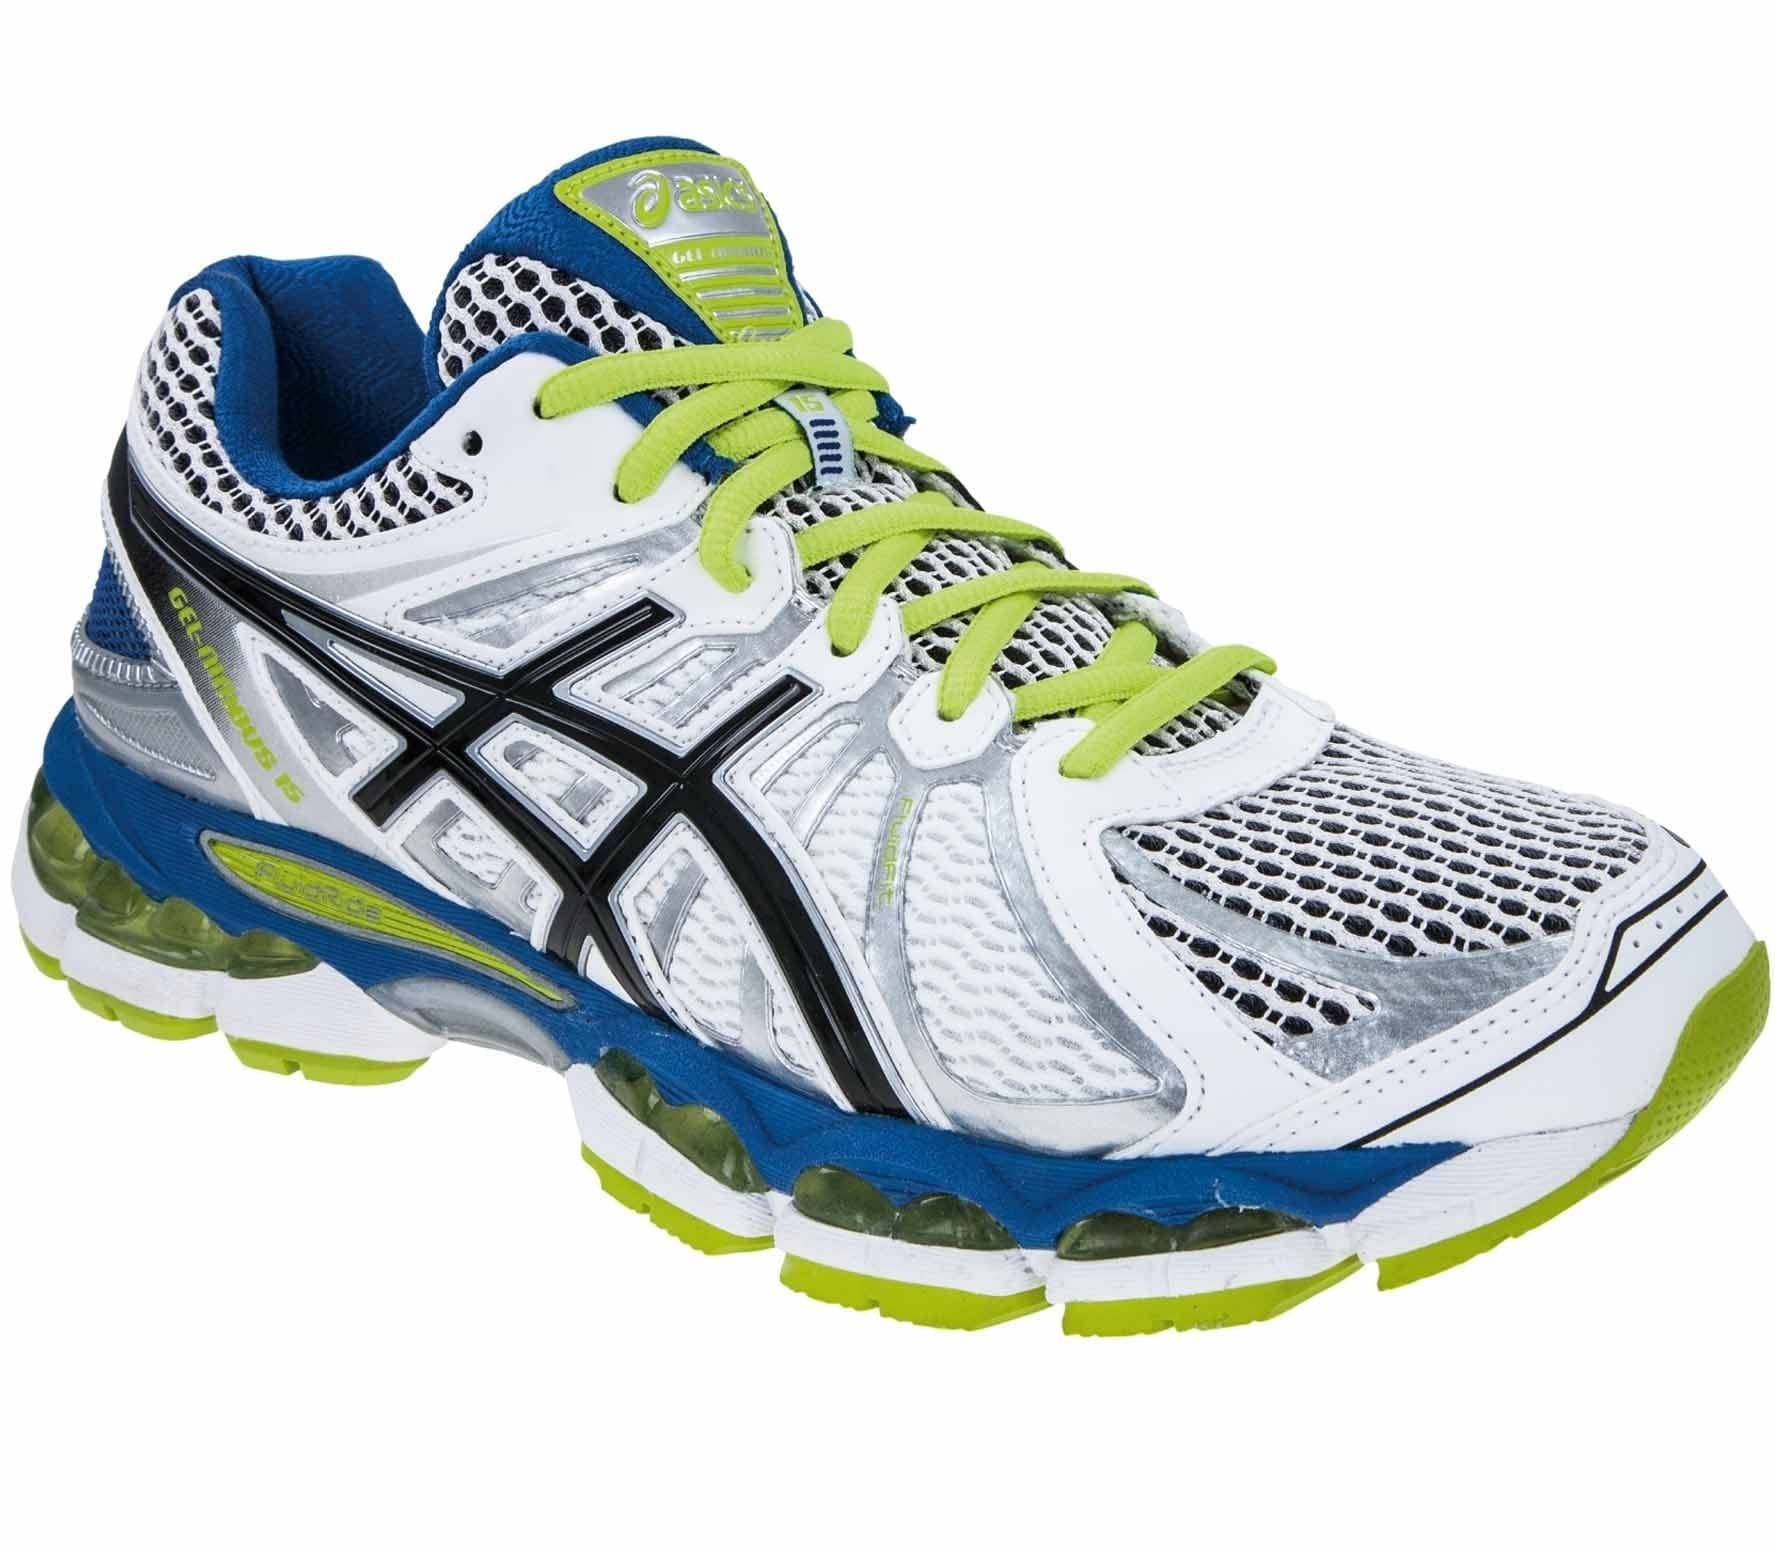 asics men's gel-nimbus 15 running shoe